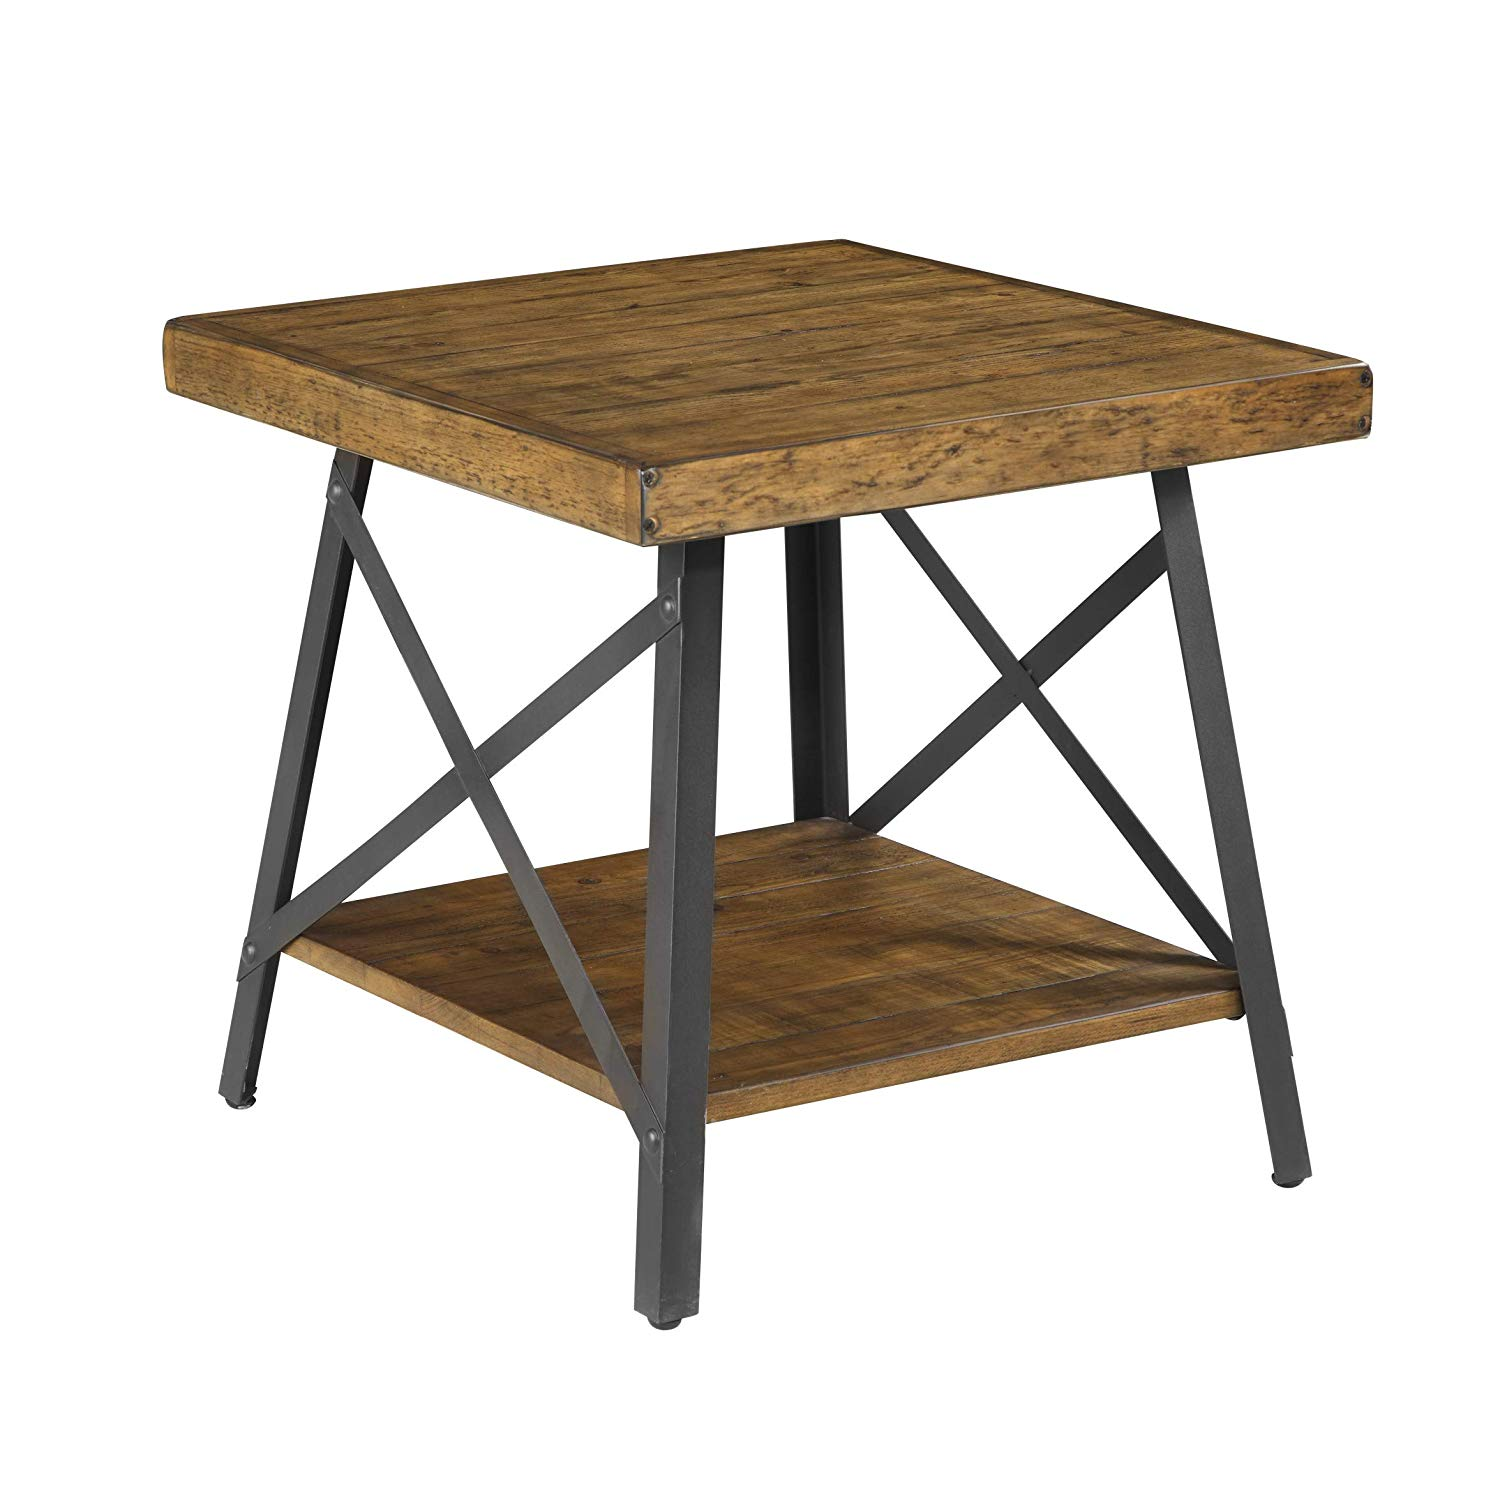 emerald home chandler rustic wood end table with solid small accent top metal base and open storage shelf kitchen dining modern square lucite waterfall round linen tablecloth